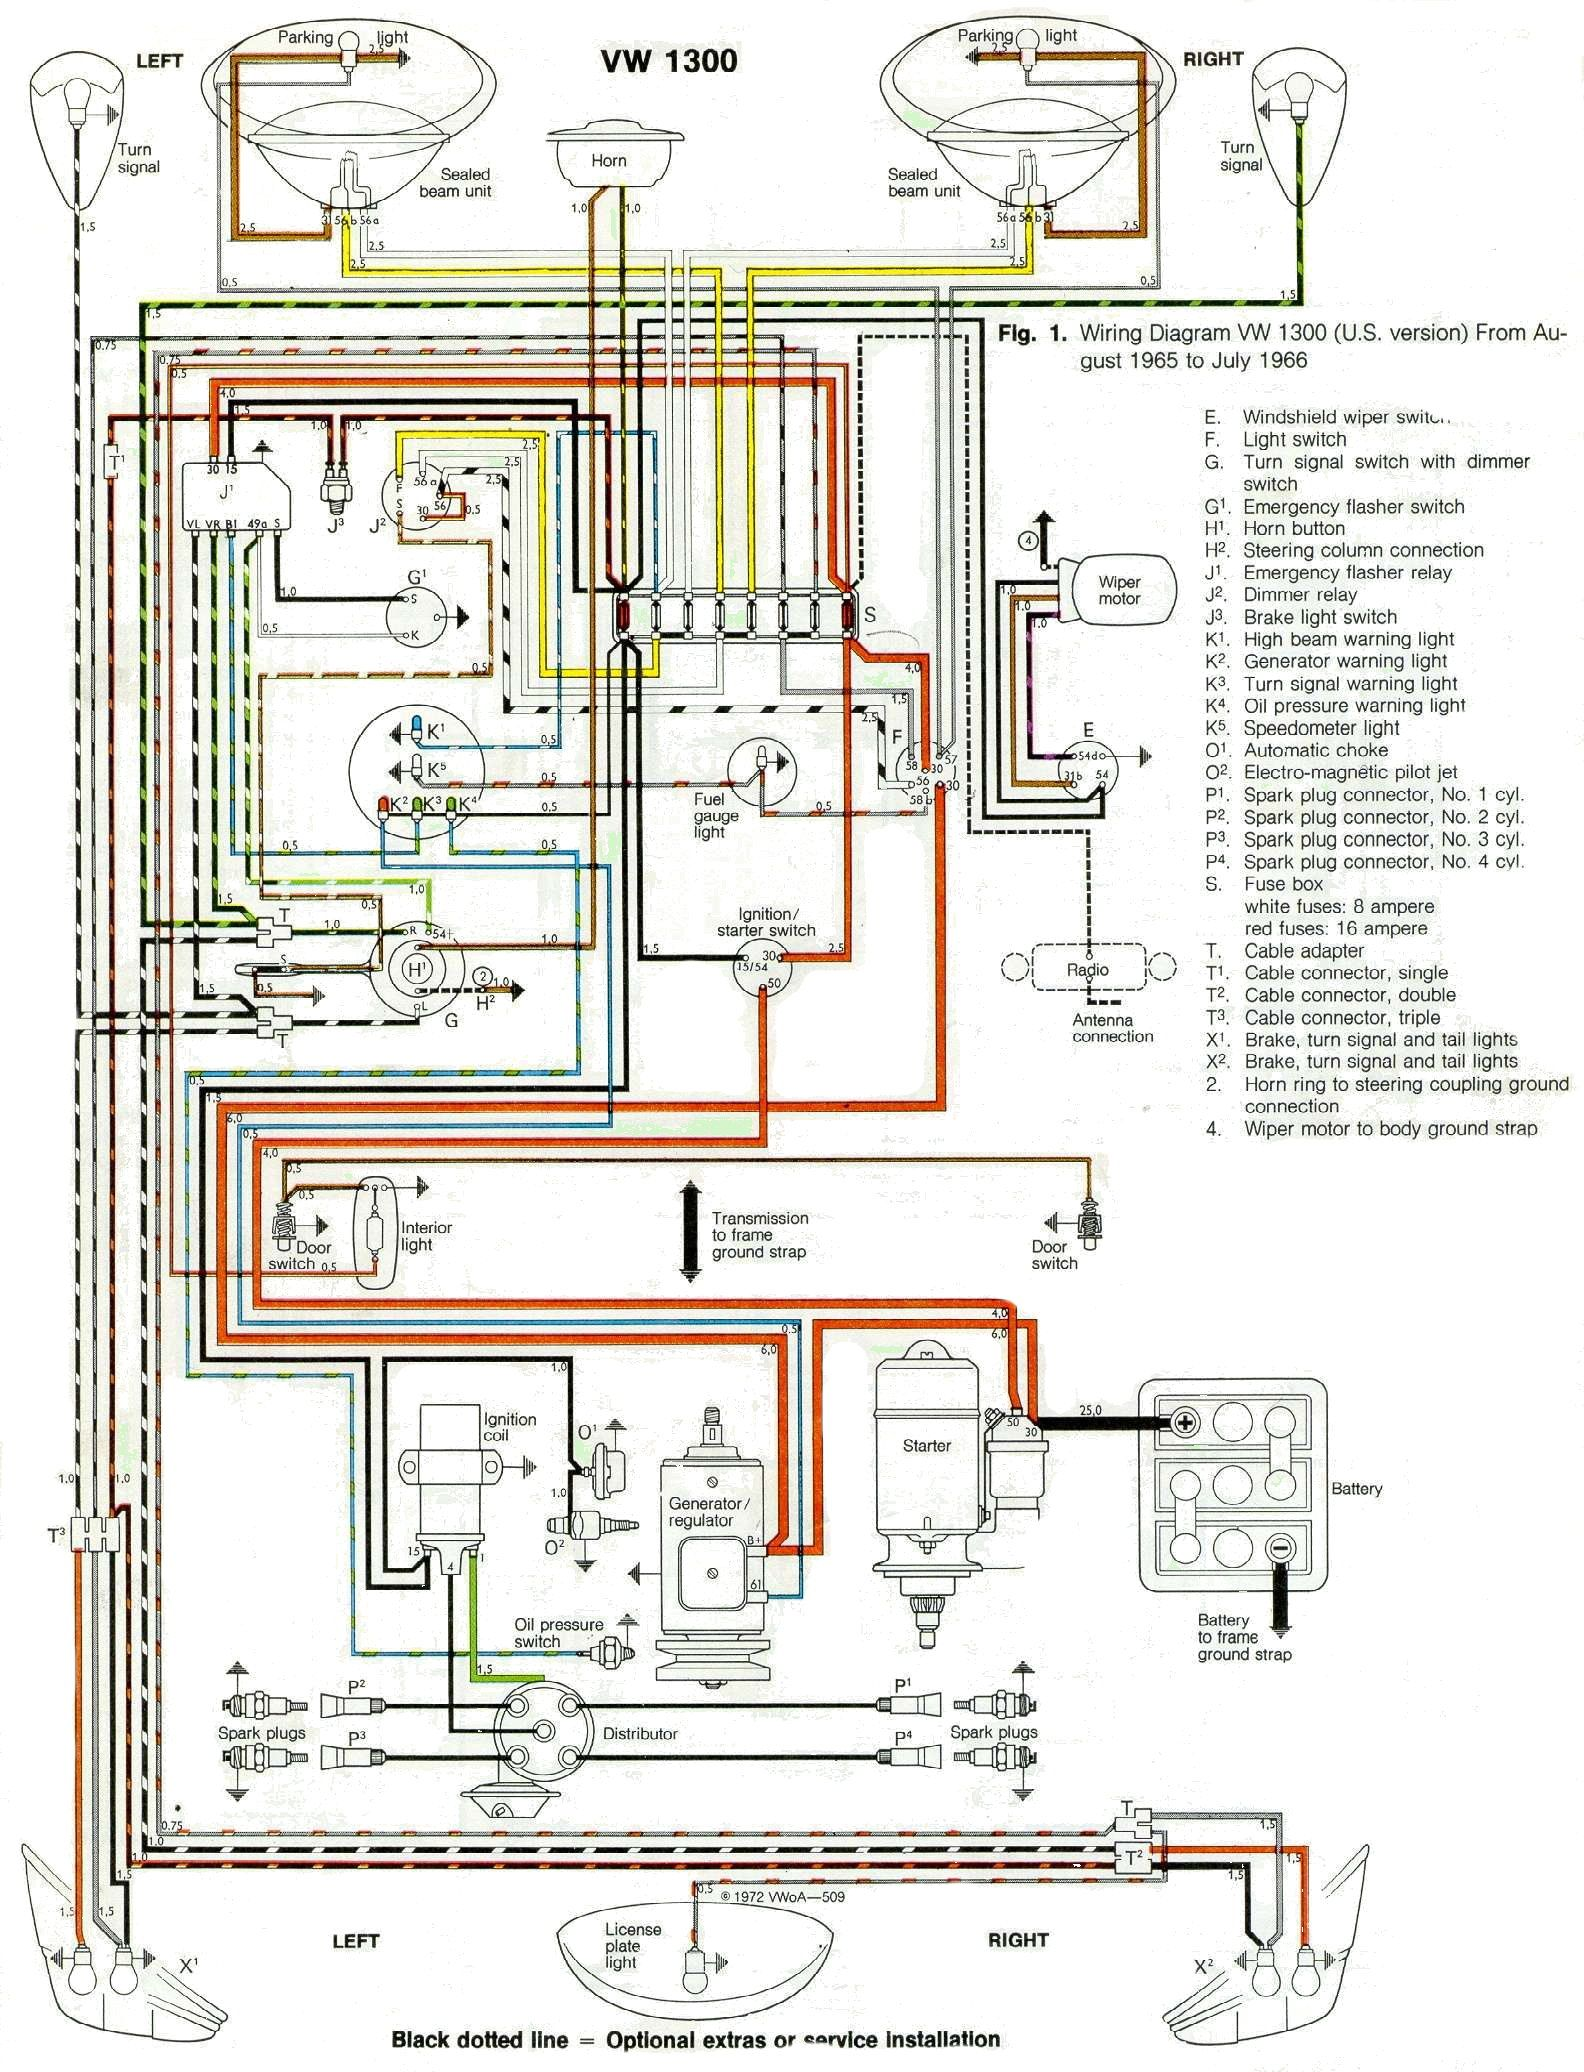 small resolution of 1966 wiring diagram cox pinterest diagram beetles and vw rh pinterest com vw wiring harness diagram